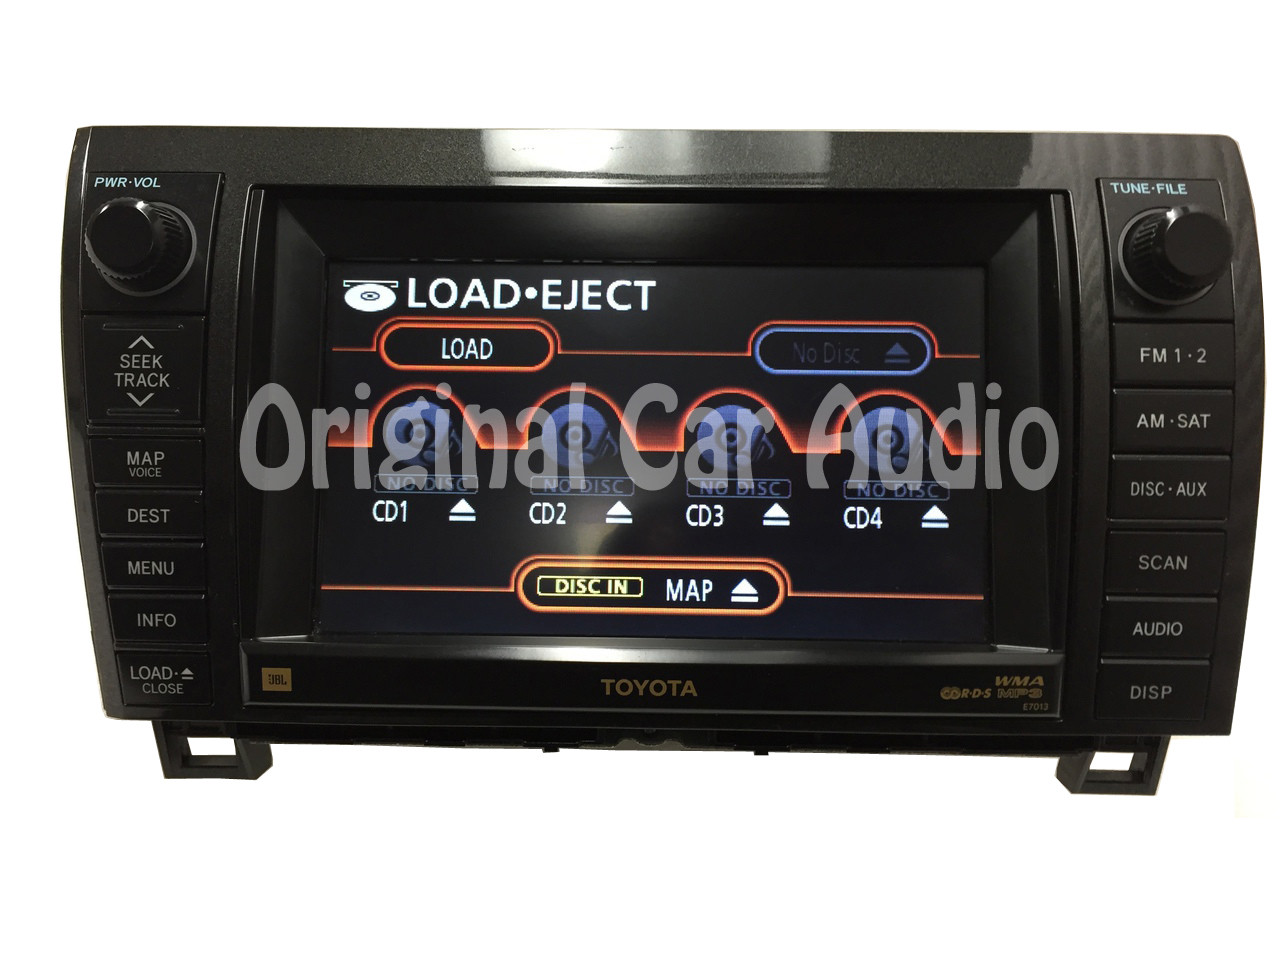 Repair Service Only Toyota Tundra Sequoia Navigation Gps Cd Player 2011 Dvd Wiring Diagram Drive Oem Ebay